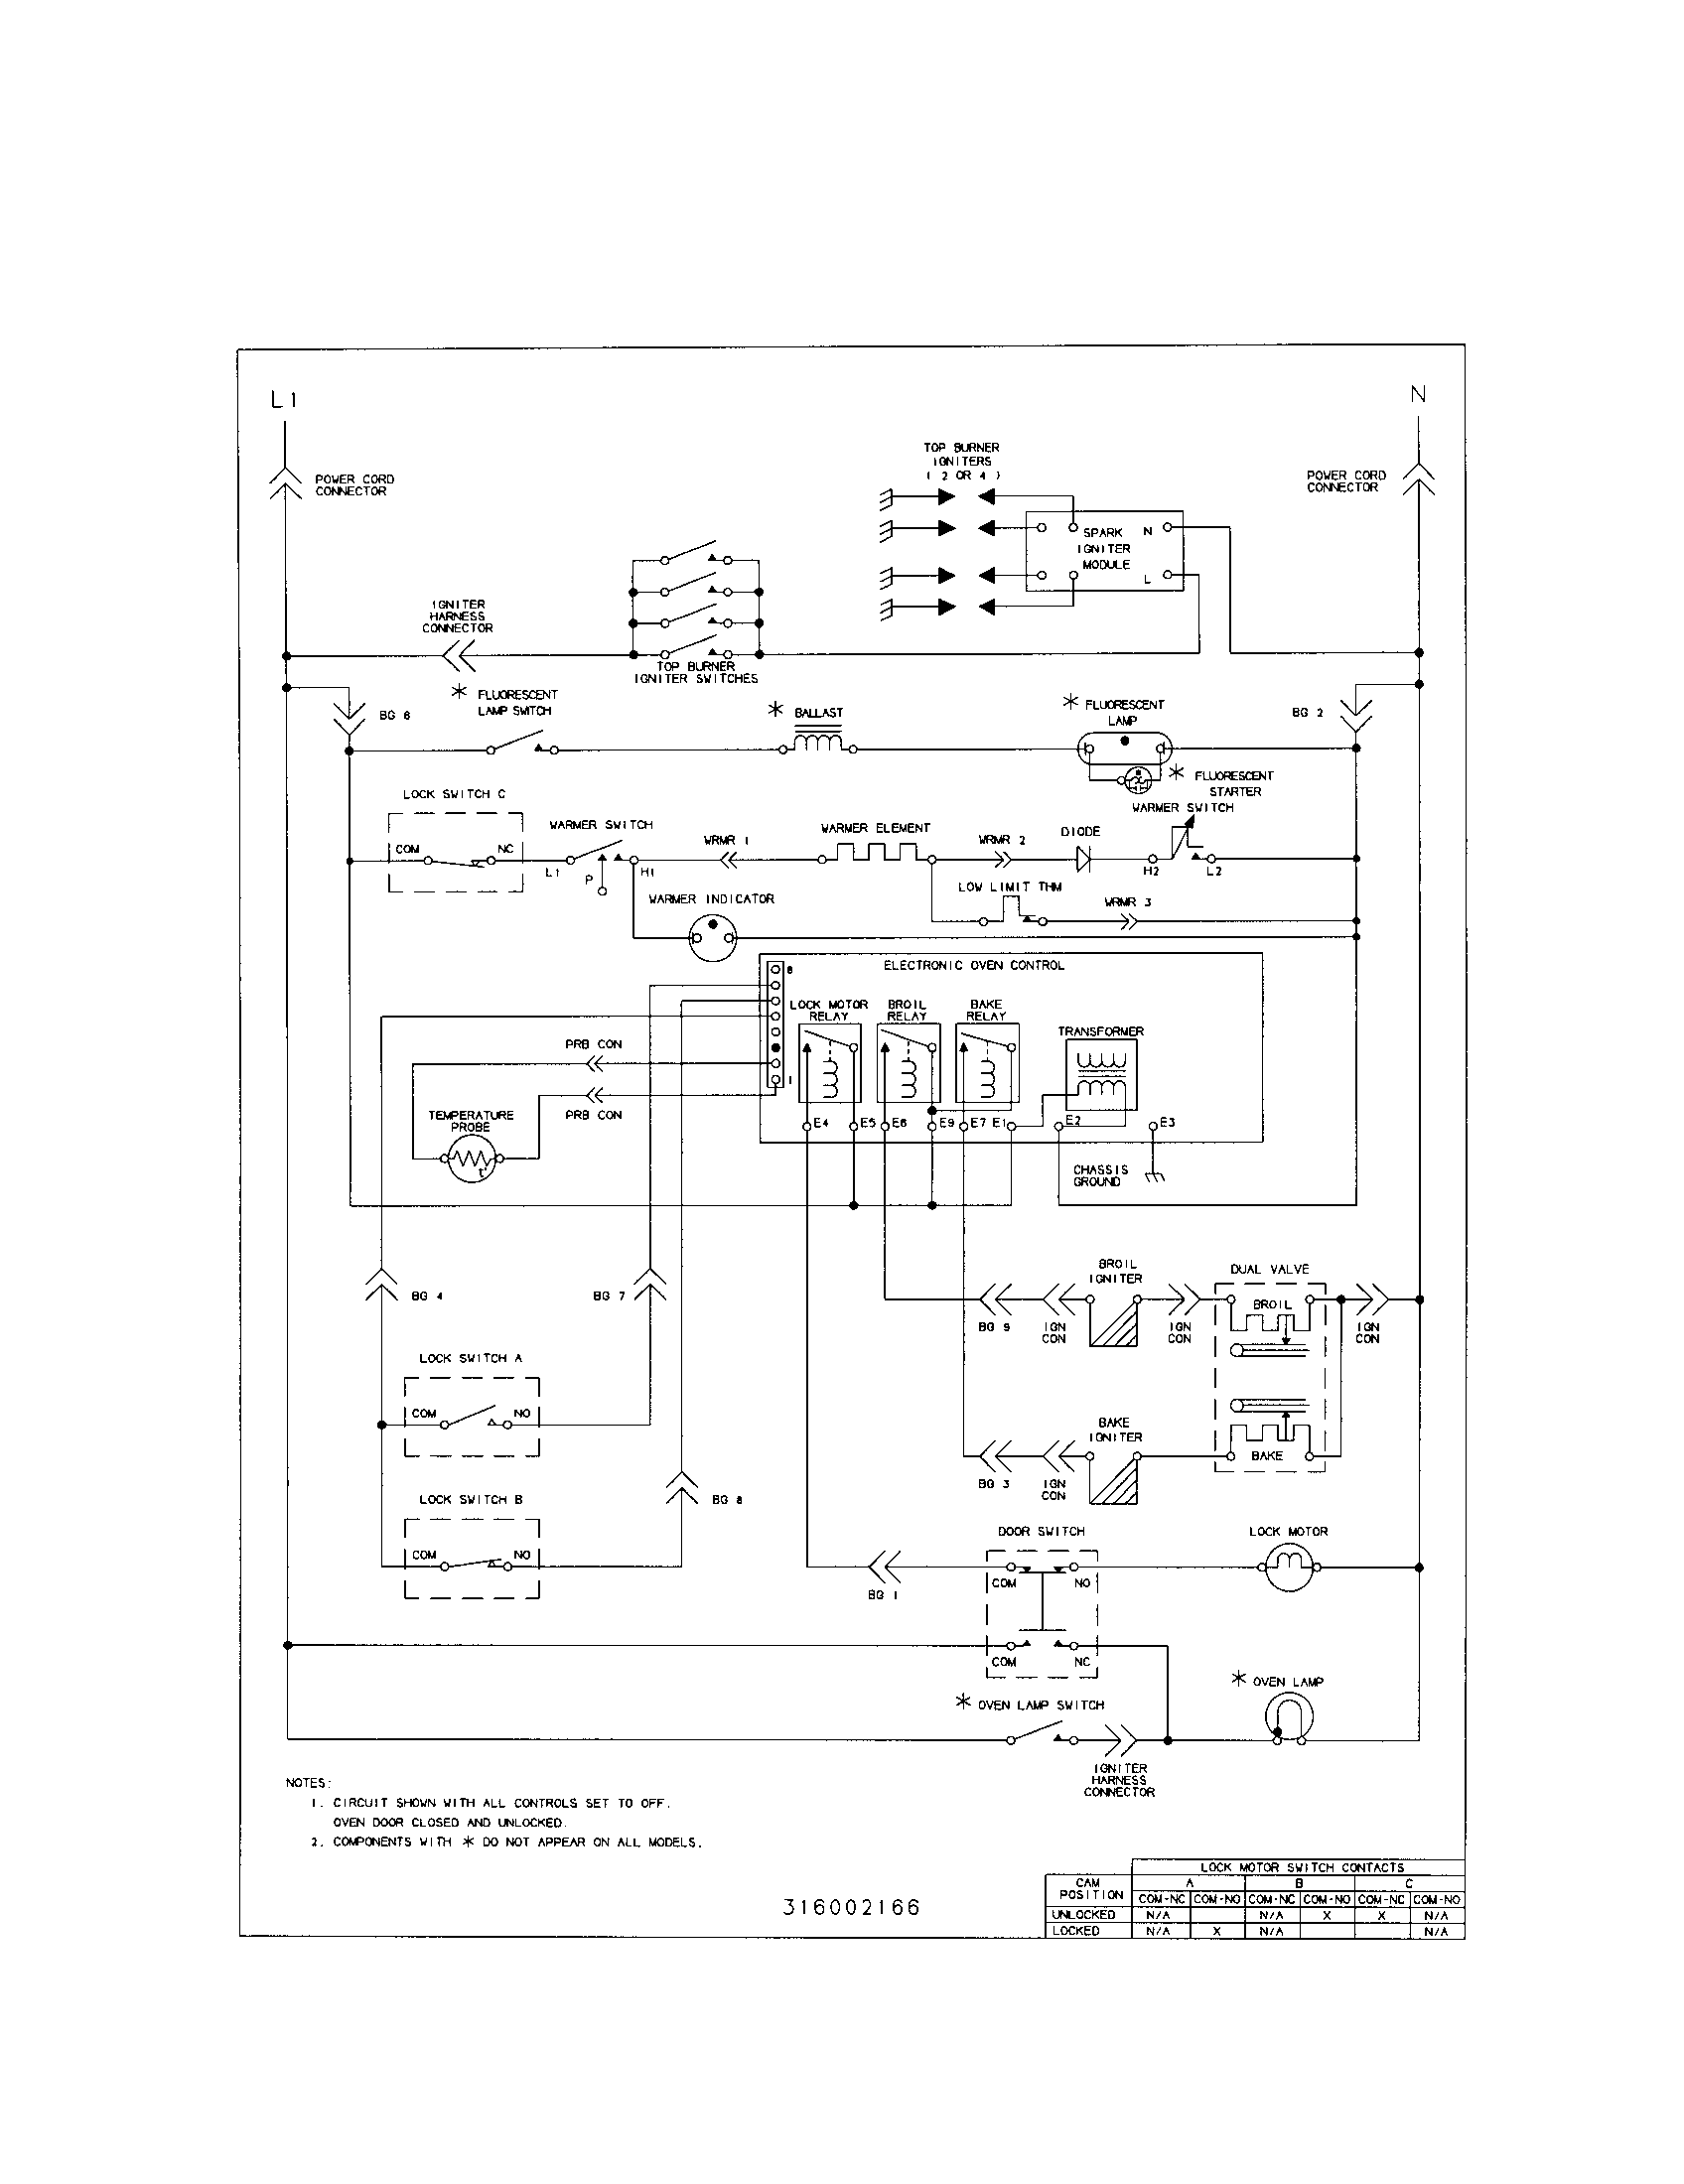 schematic diagram of computer components sets and venn diagrams powerpoint frigidaire fgf379wecs range timer stove clocks